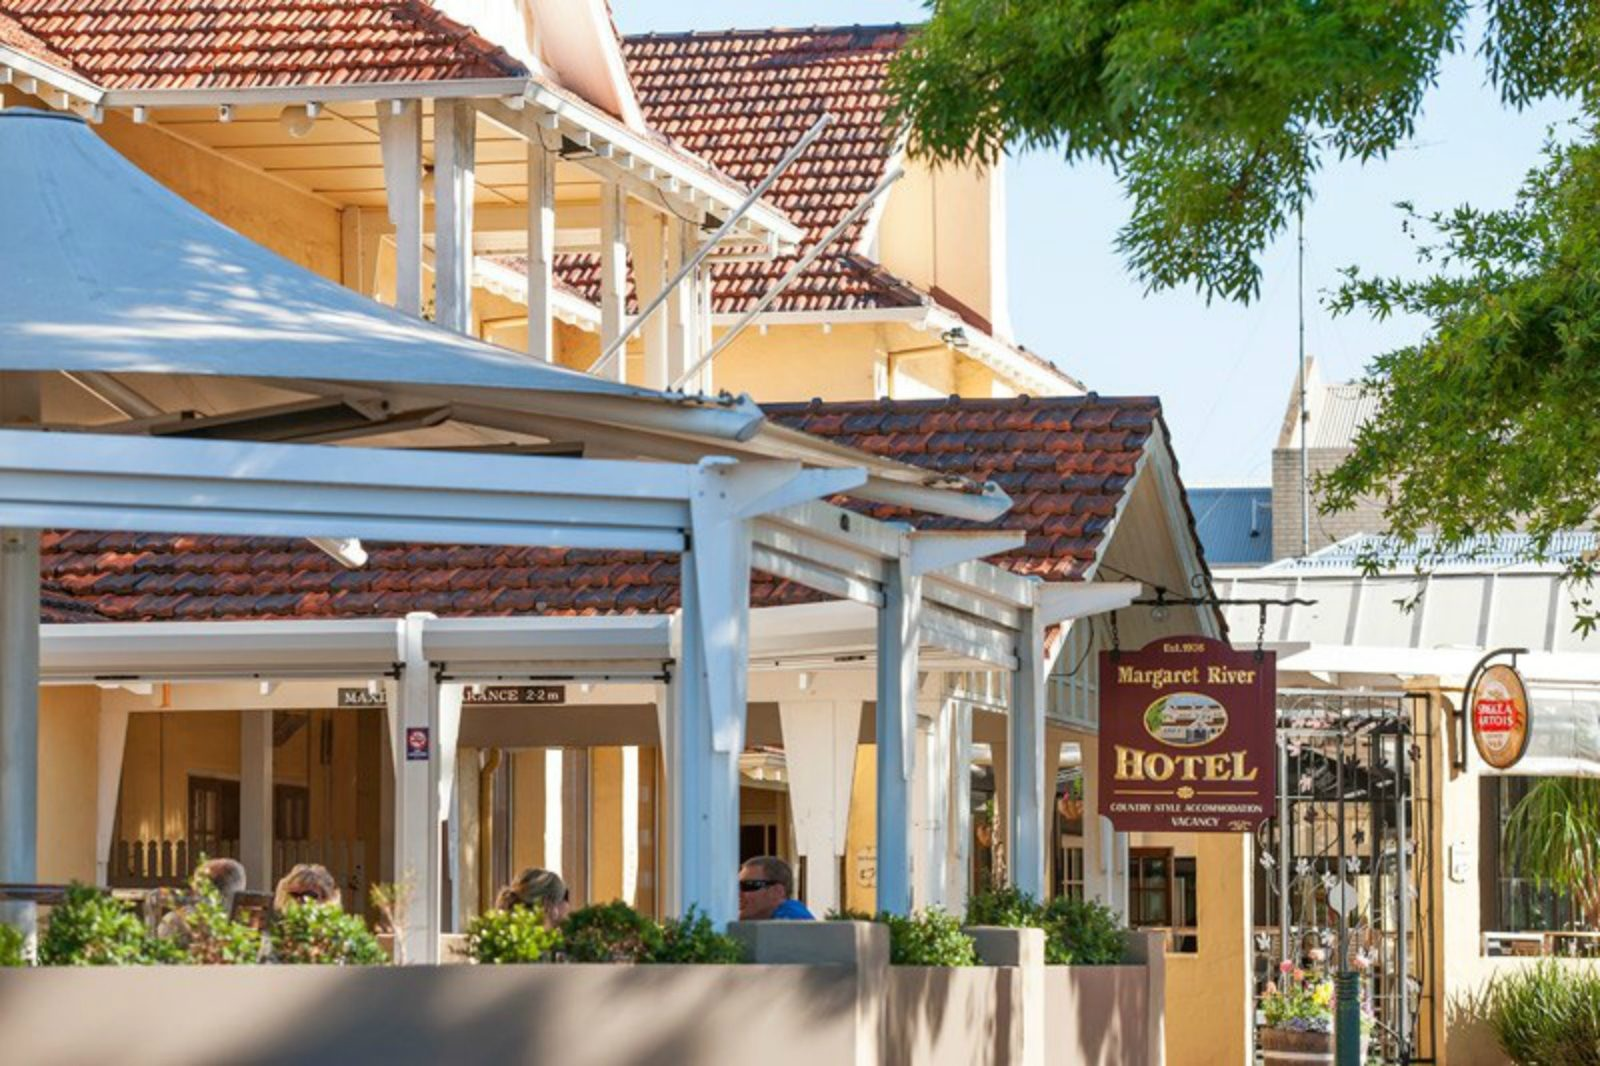 Margaret River Hotel and Holiday Suites, Margaret River, Western Australia